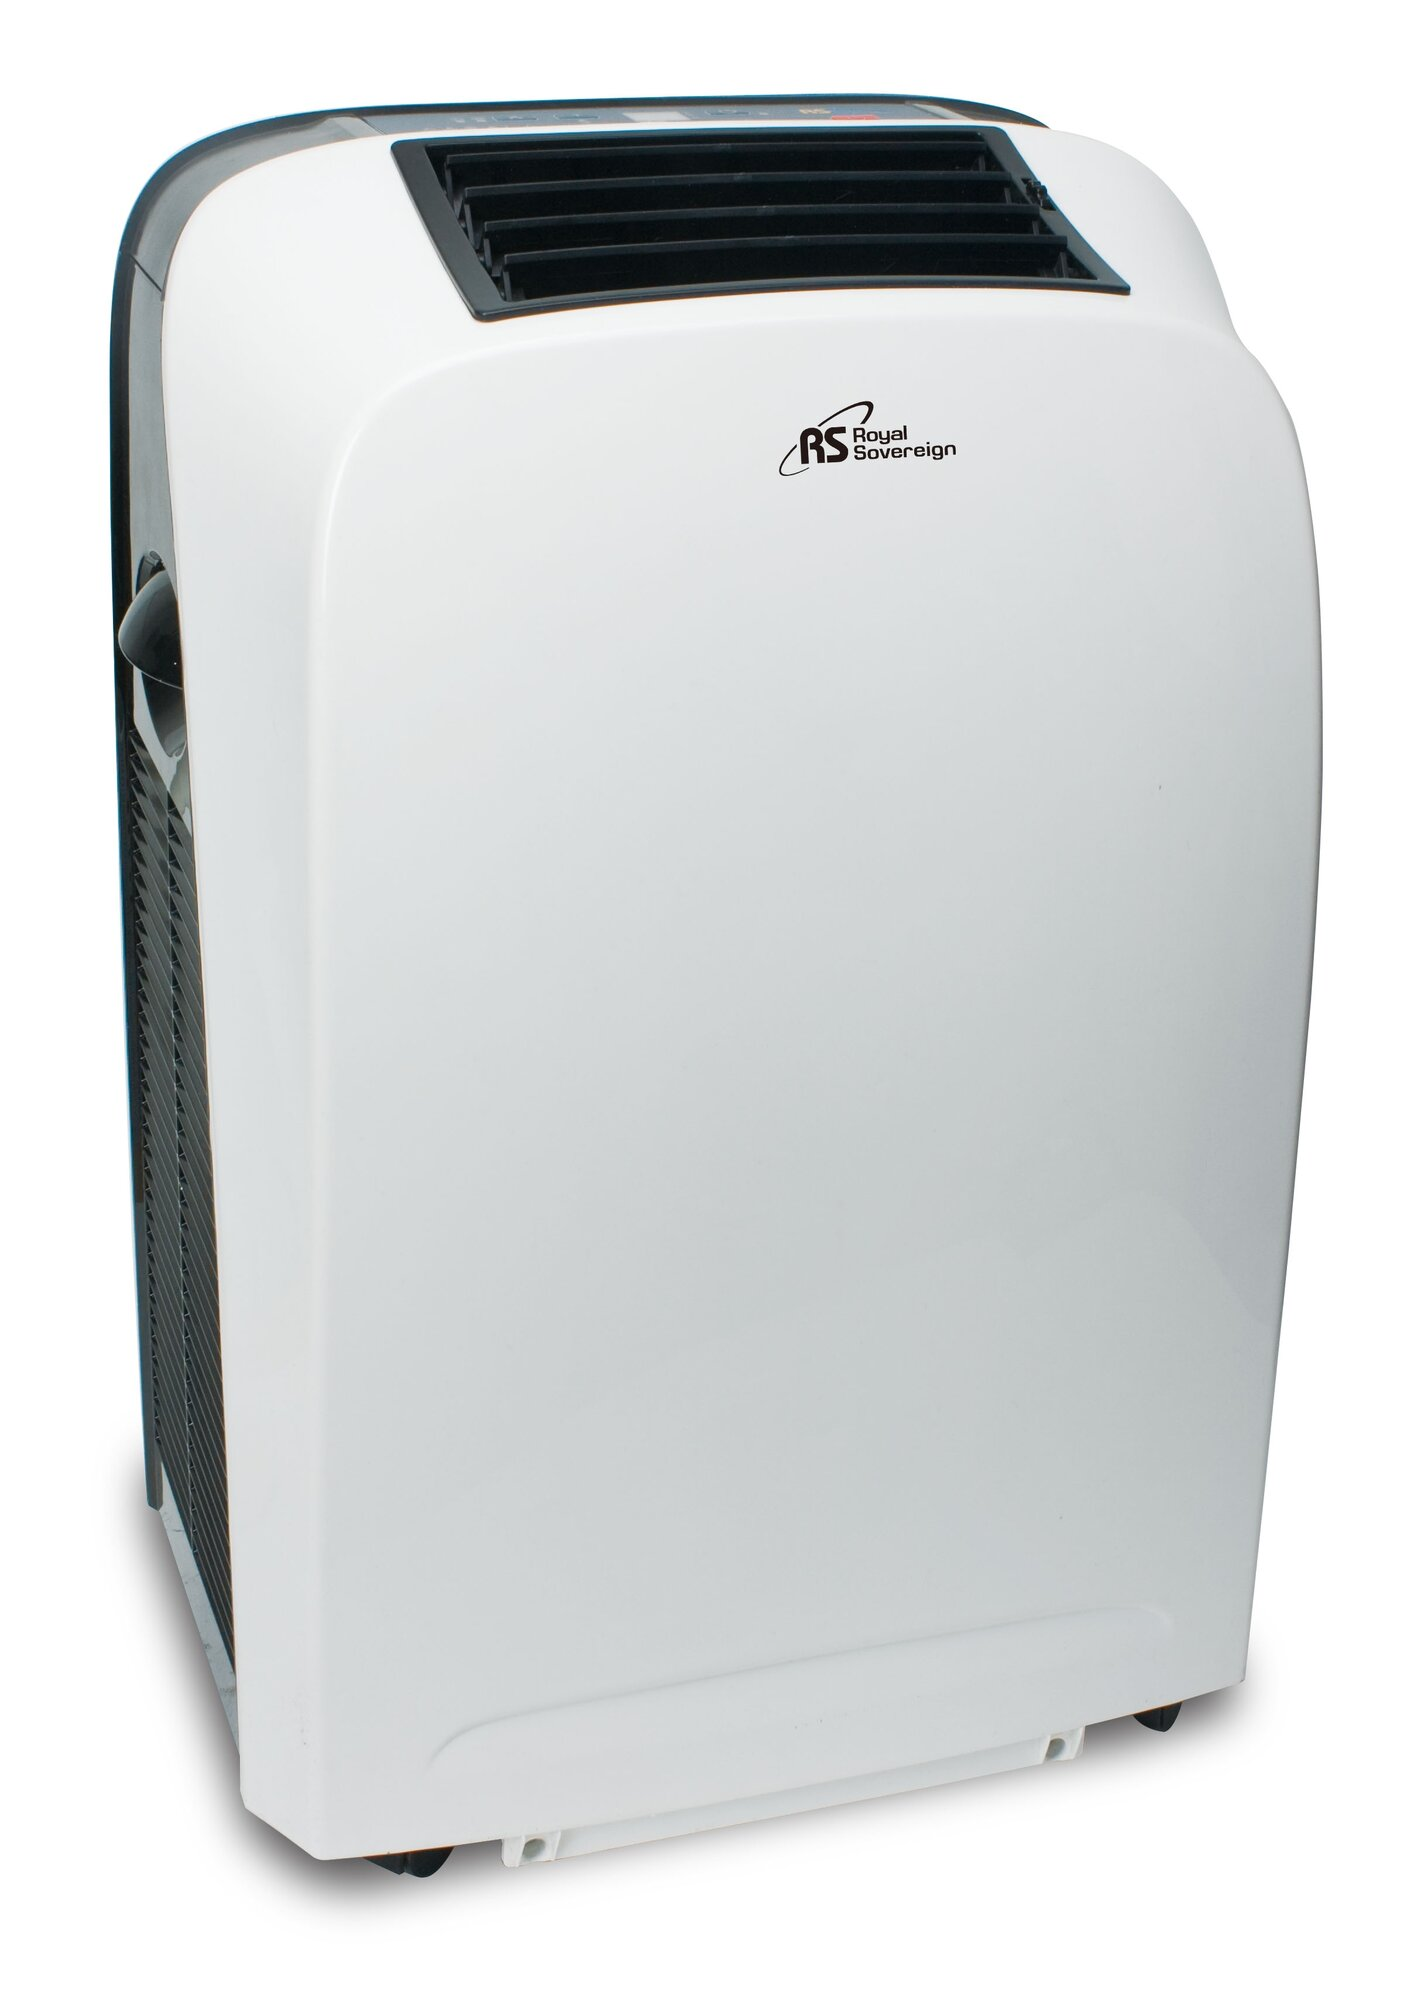 Royal sovereign int 39 l inc 11 000 btu portable air for 11000 btu window air conditioner